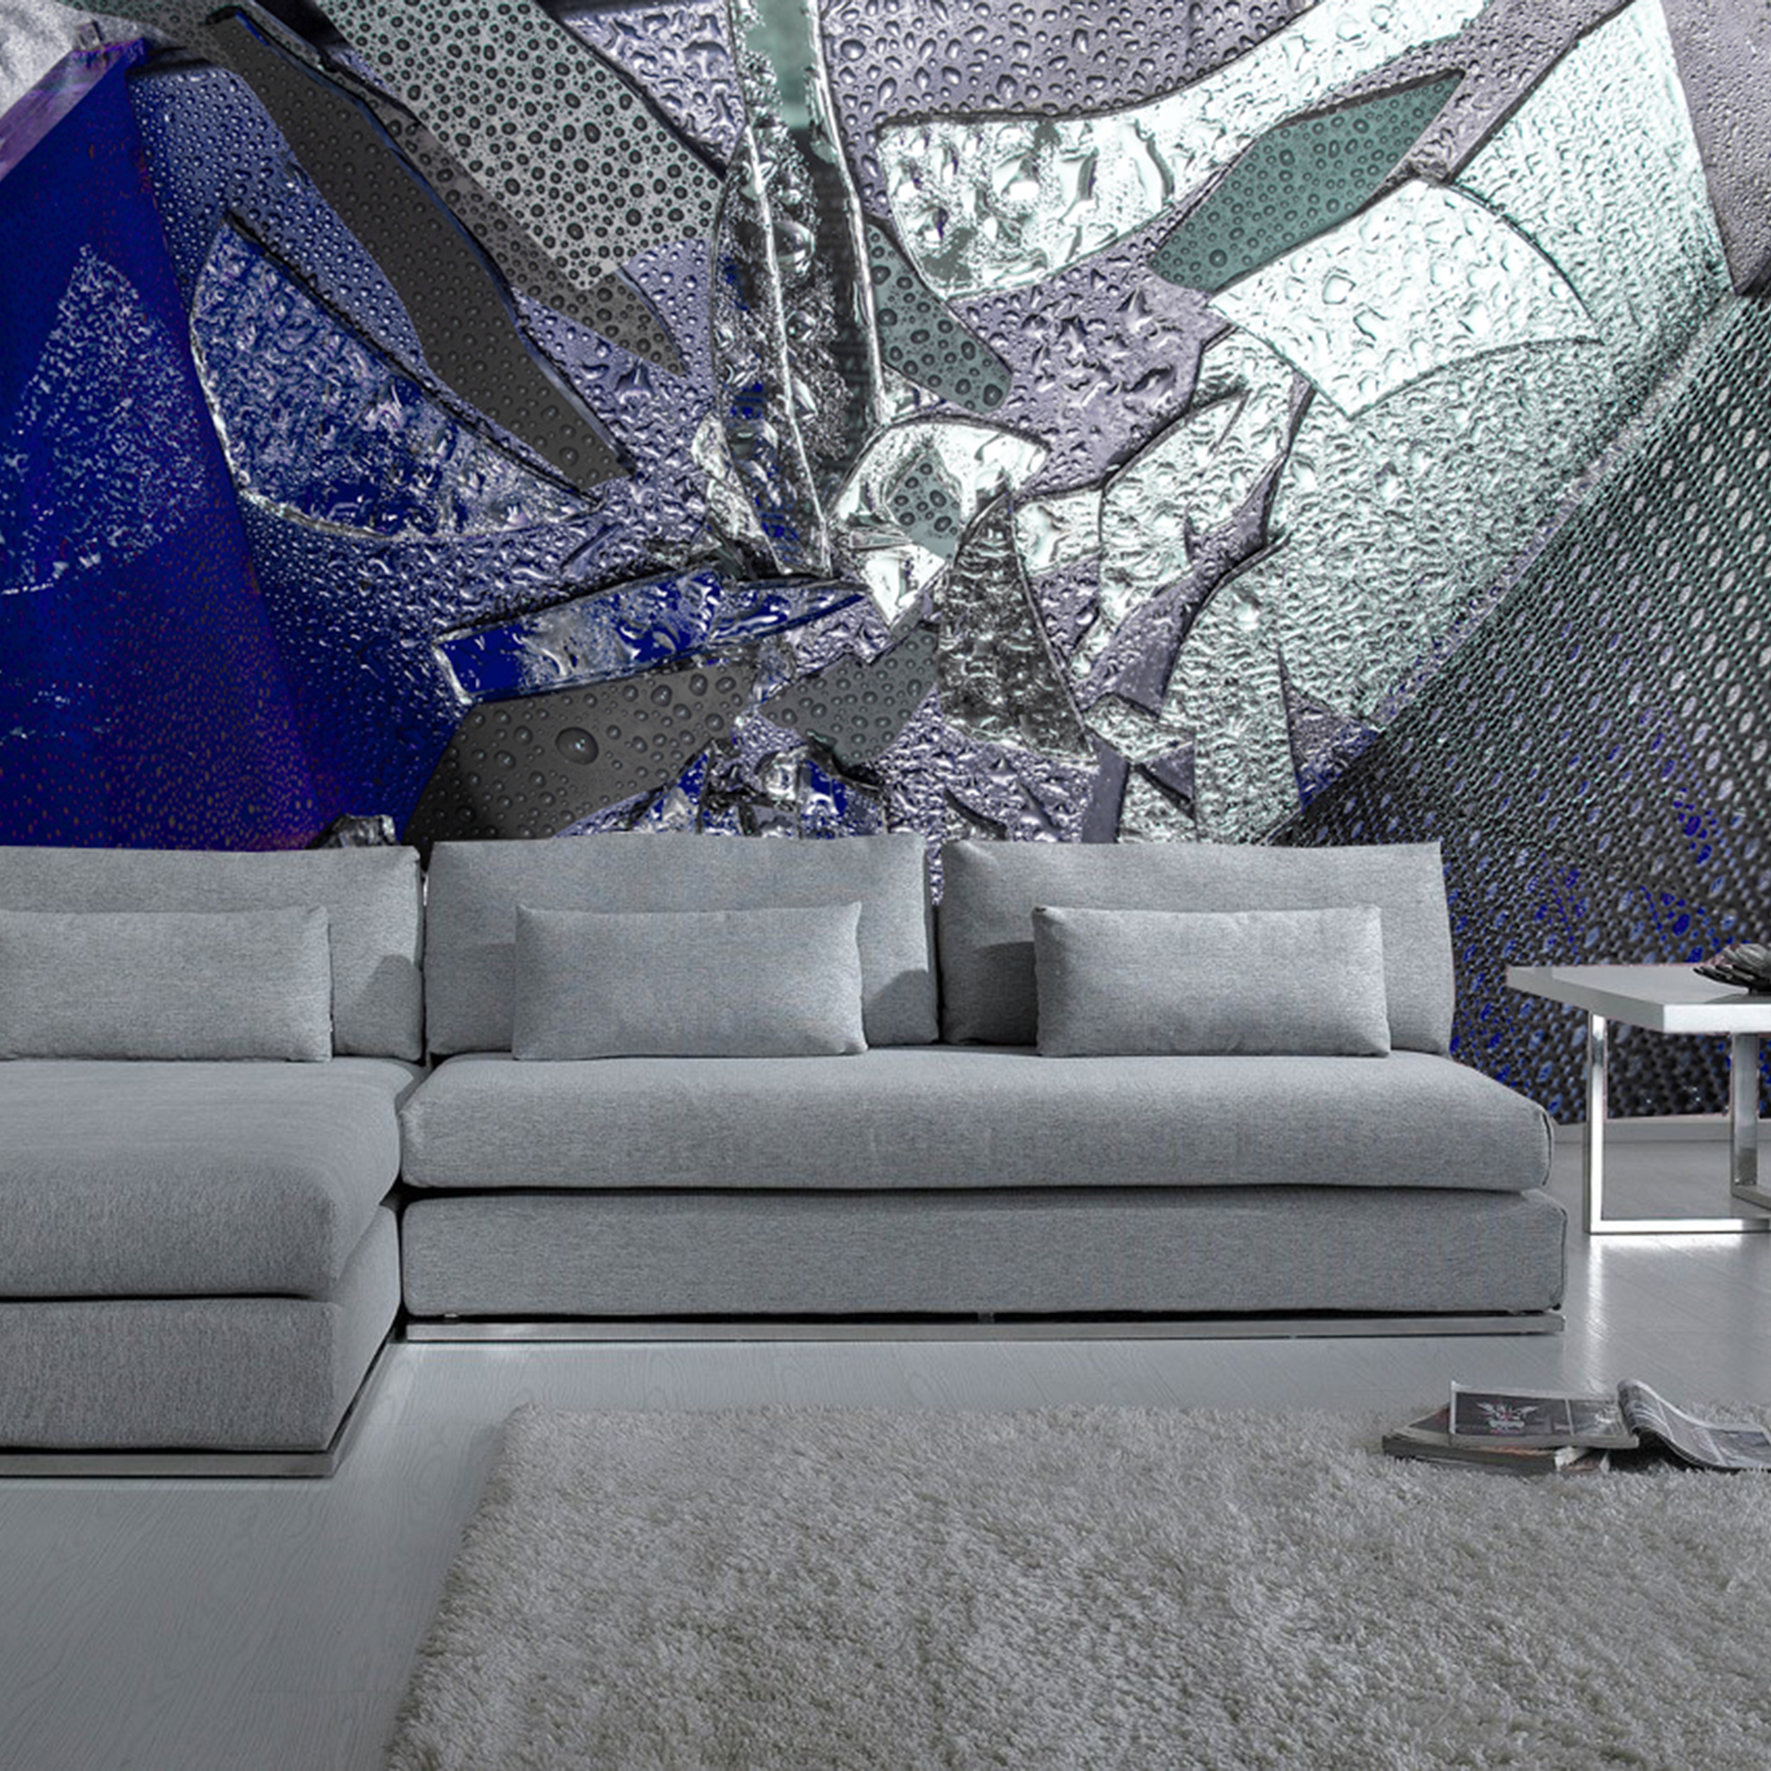 M3 COLLECTION  - Transforming modern composite materials Metal, Mesh and Mirror to generate a tridimensional feel on a 2D surface.